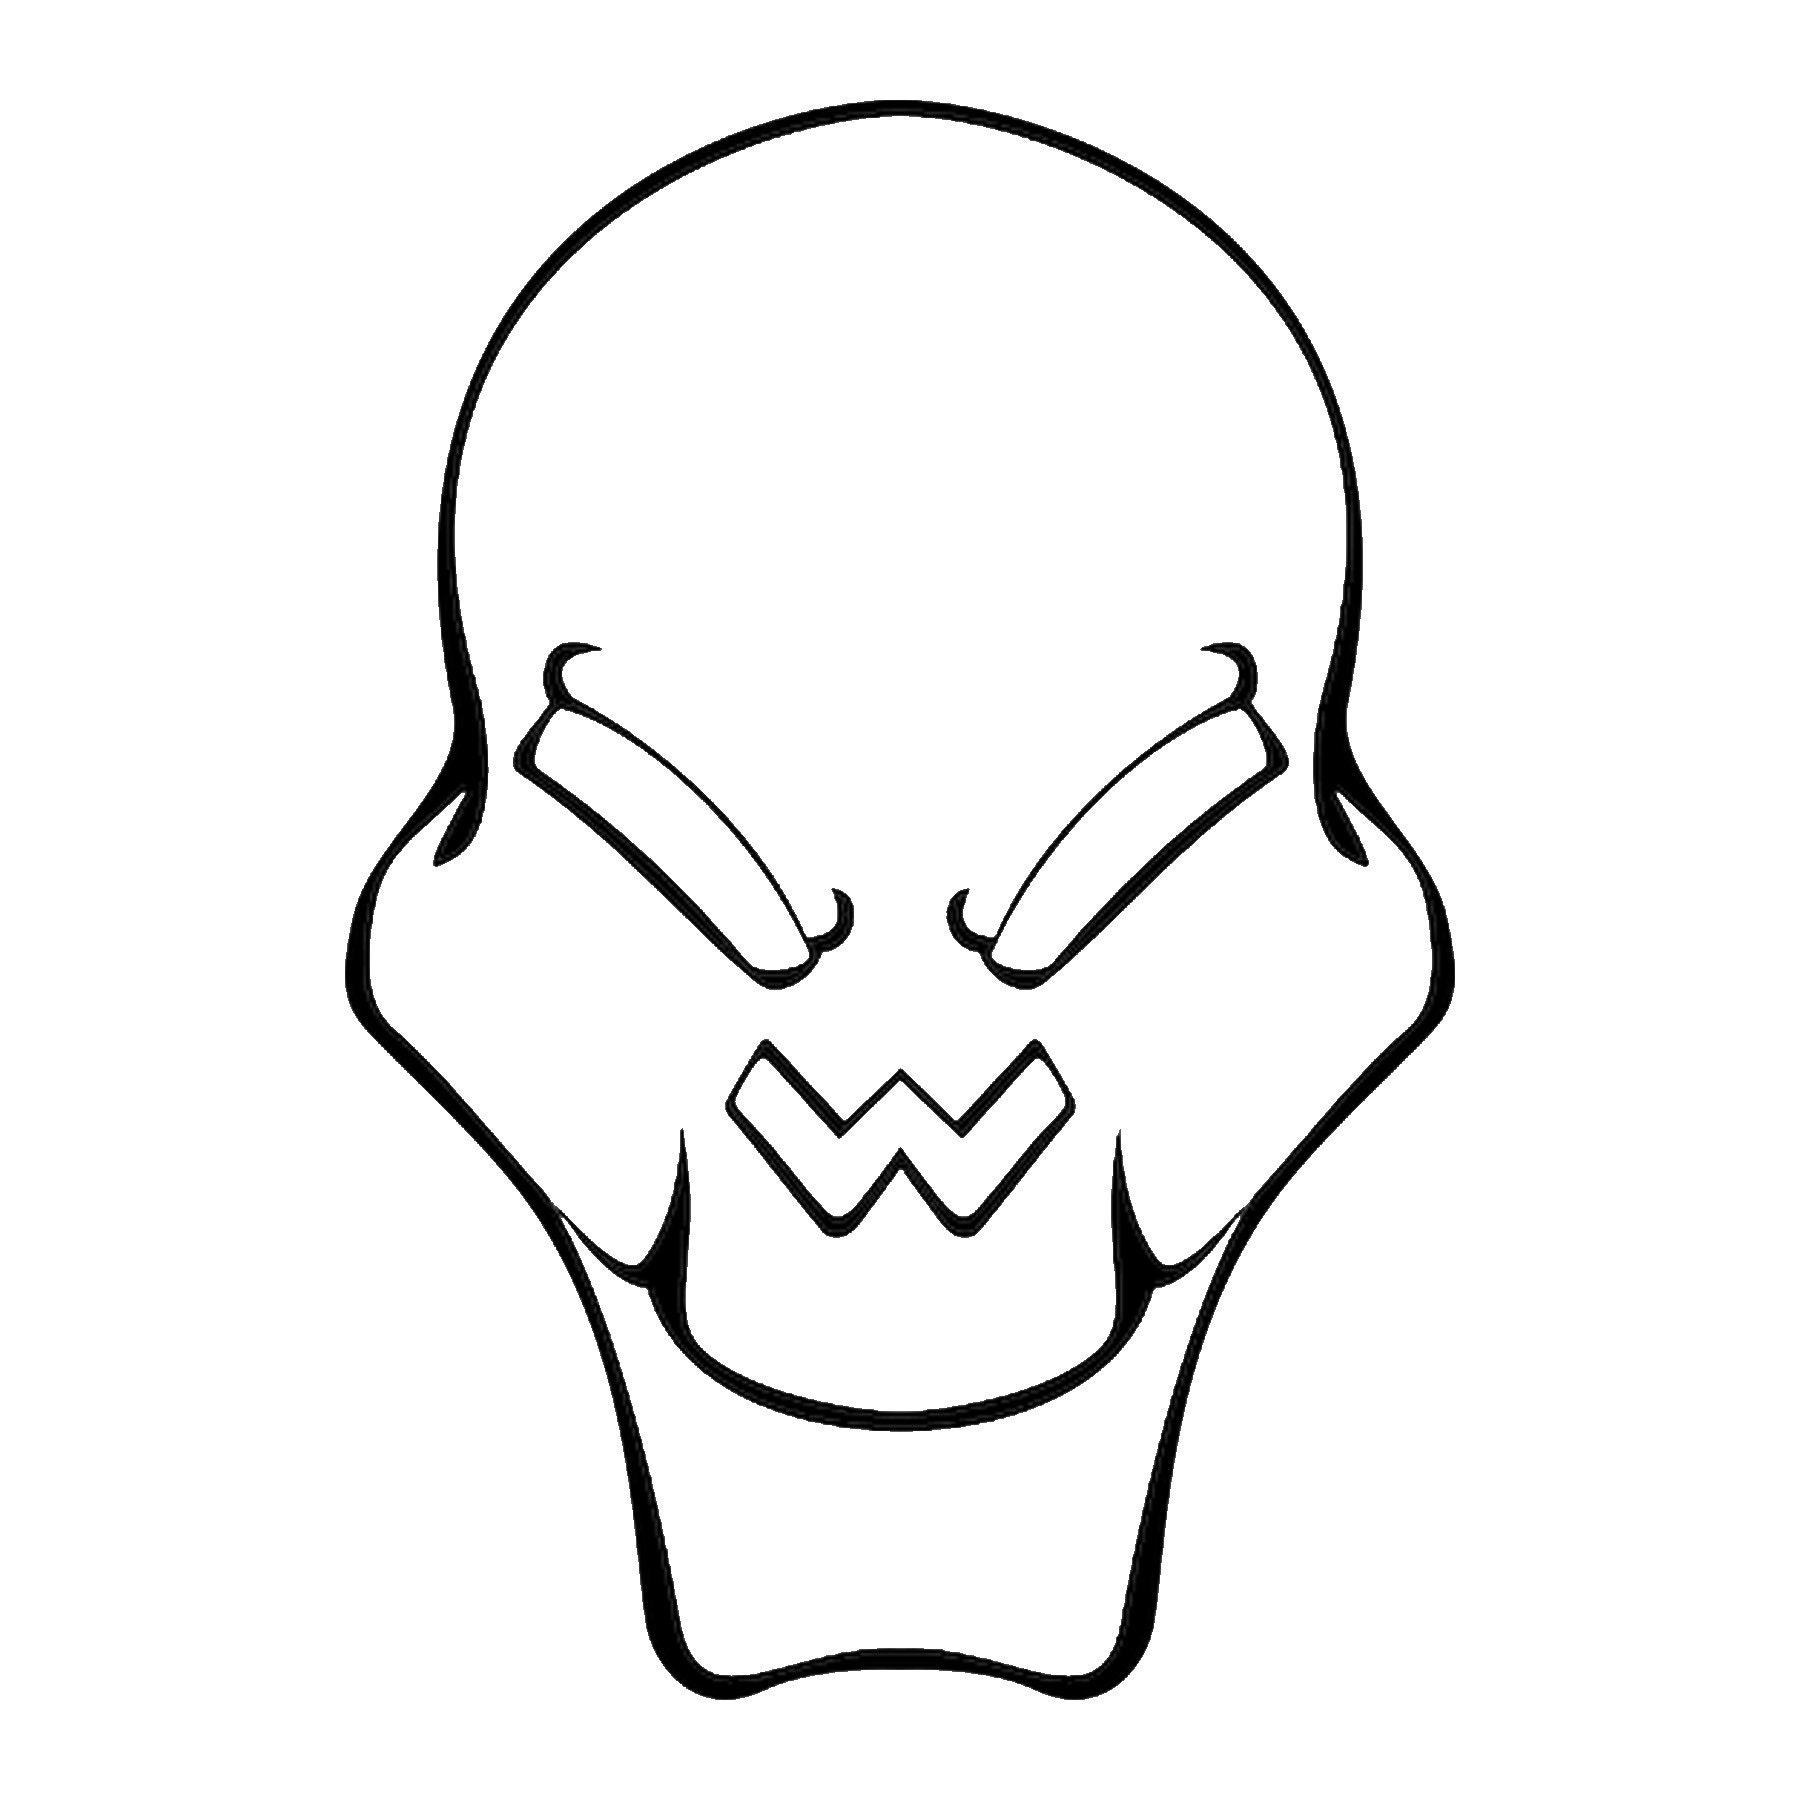 CAD$8.69 - Alien Vinyl Decal - various sizes and colors - colours